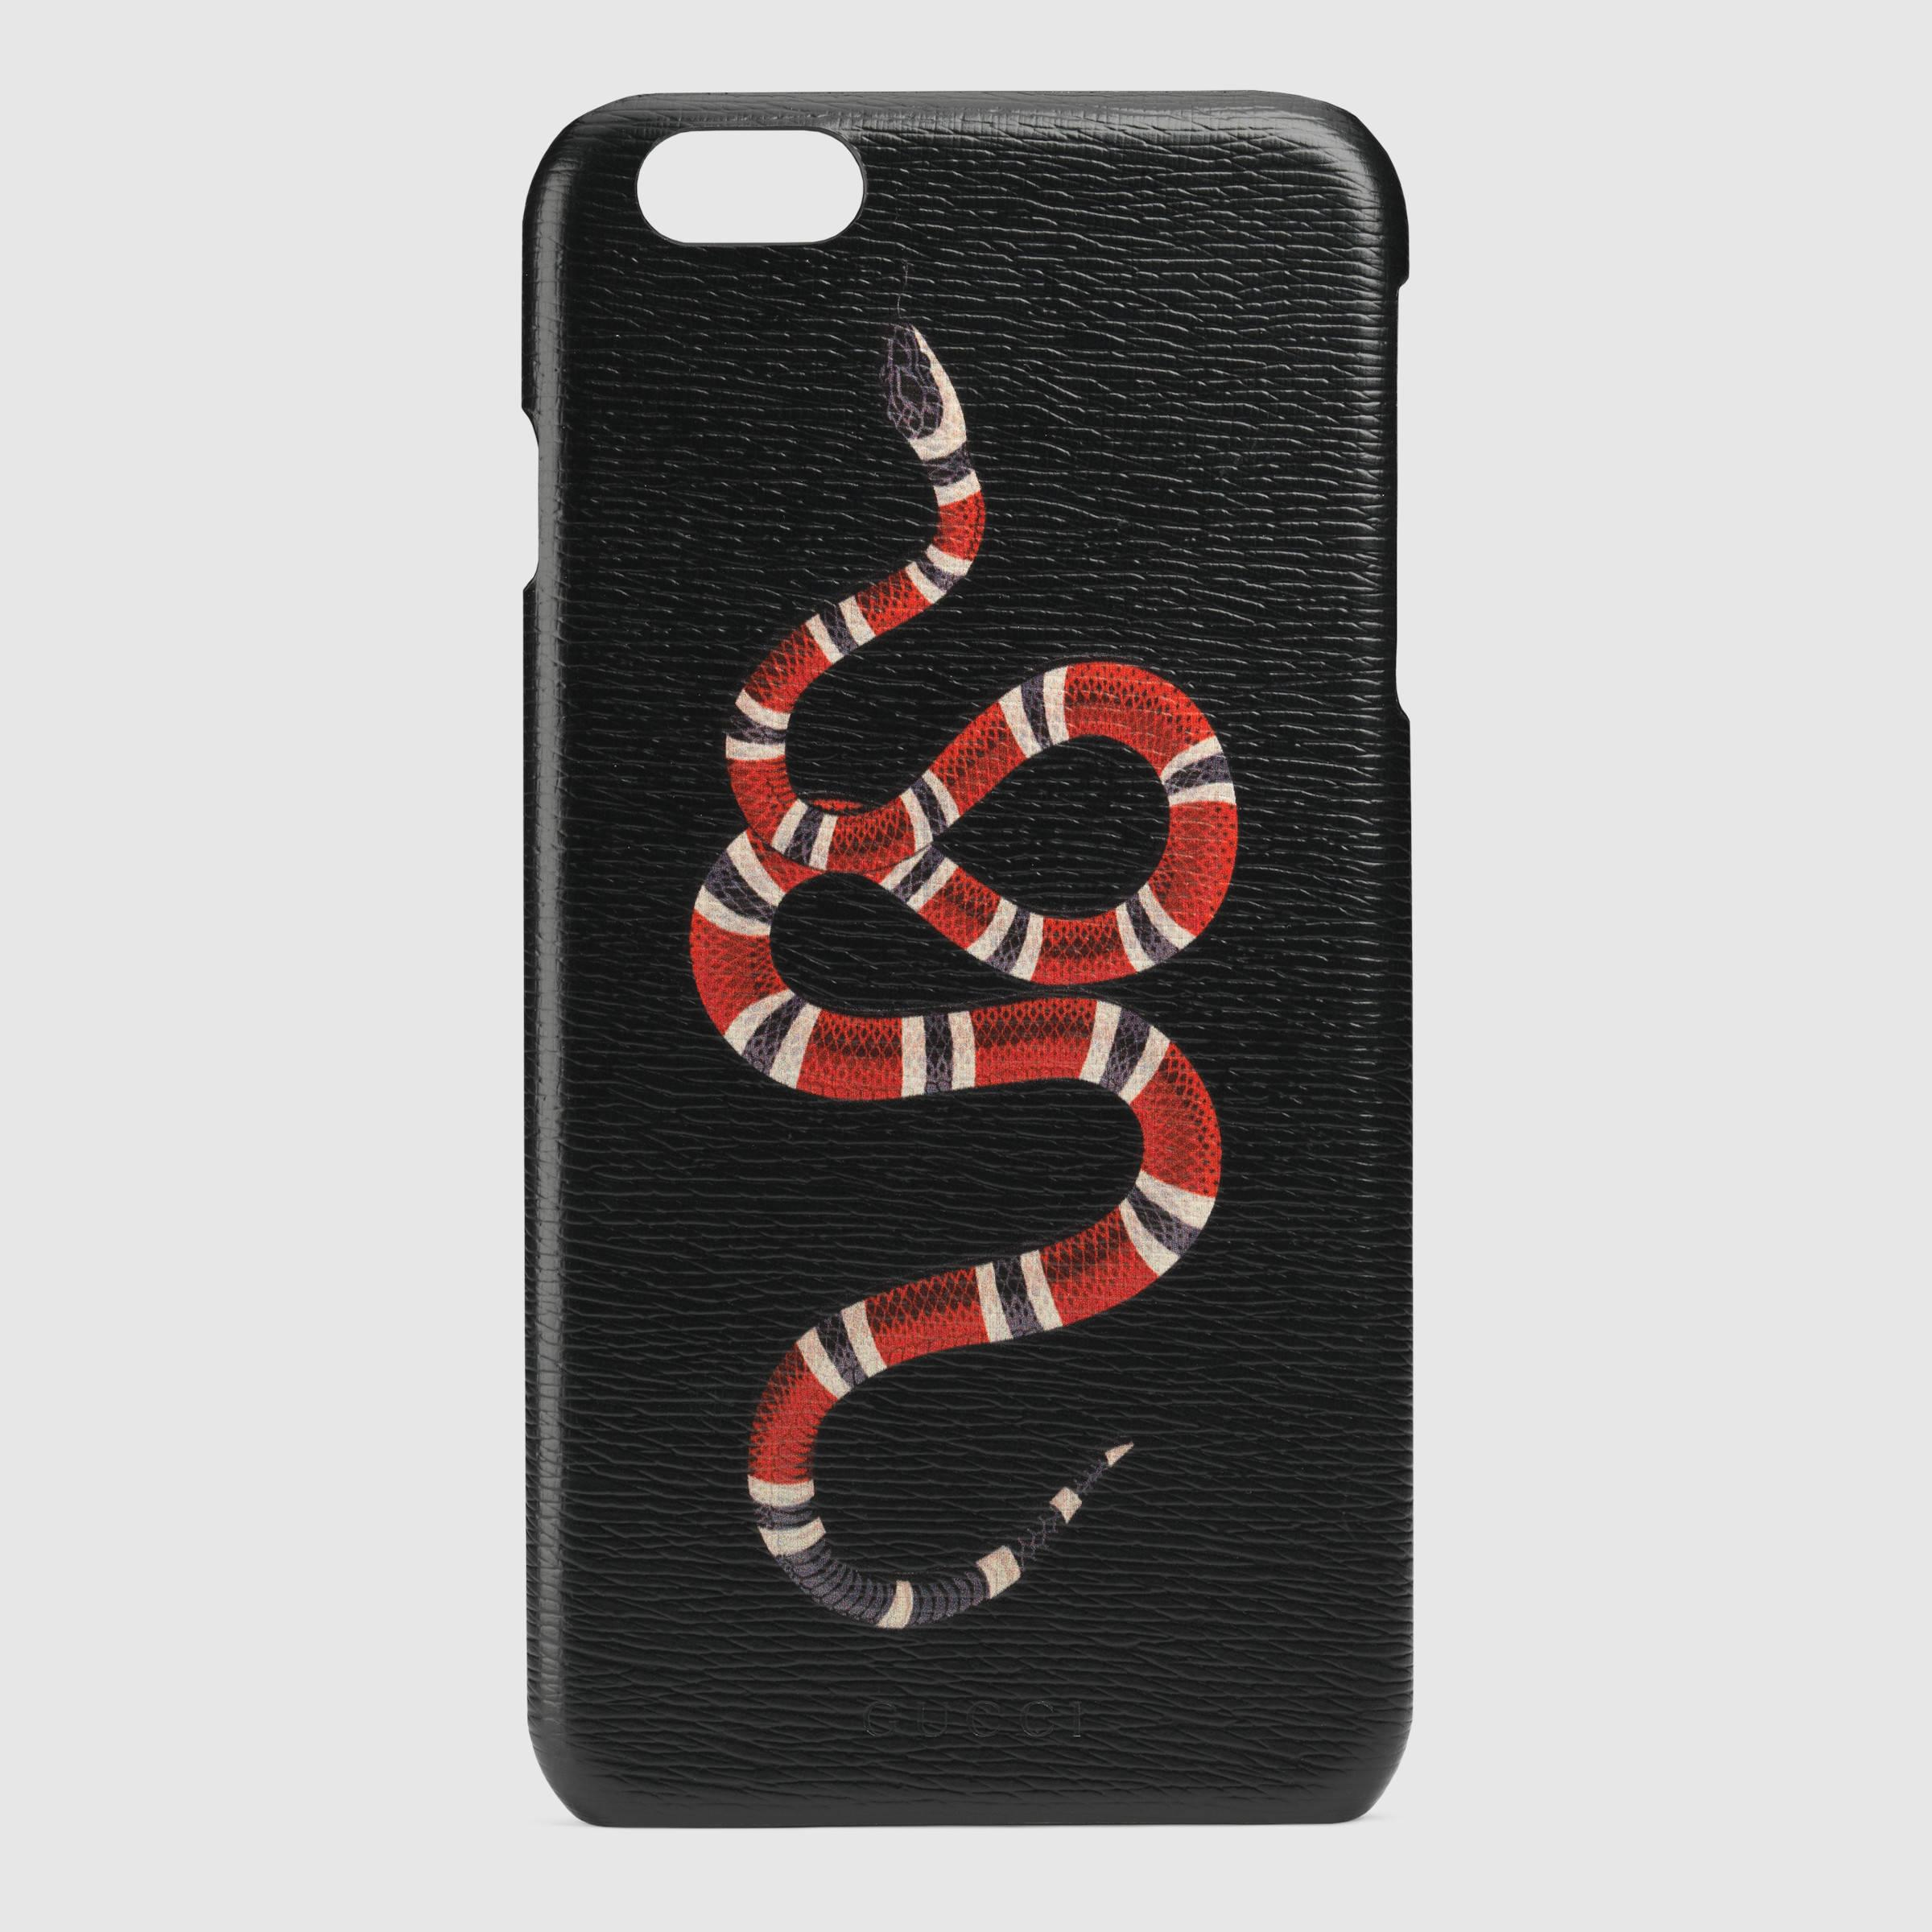 Gucci Iphone Case Snake